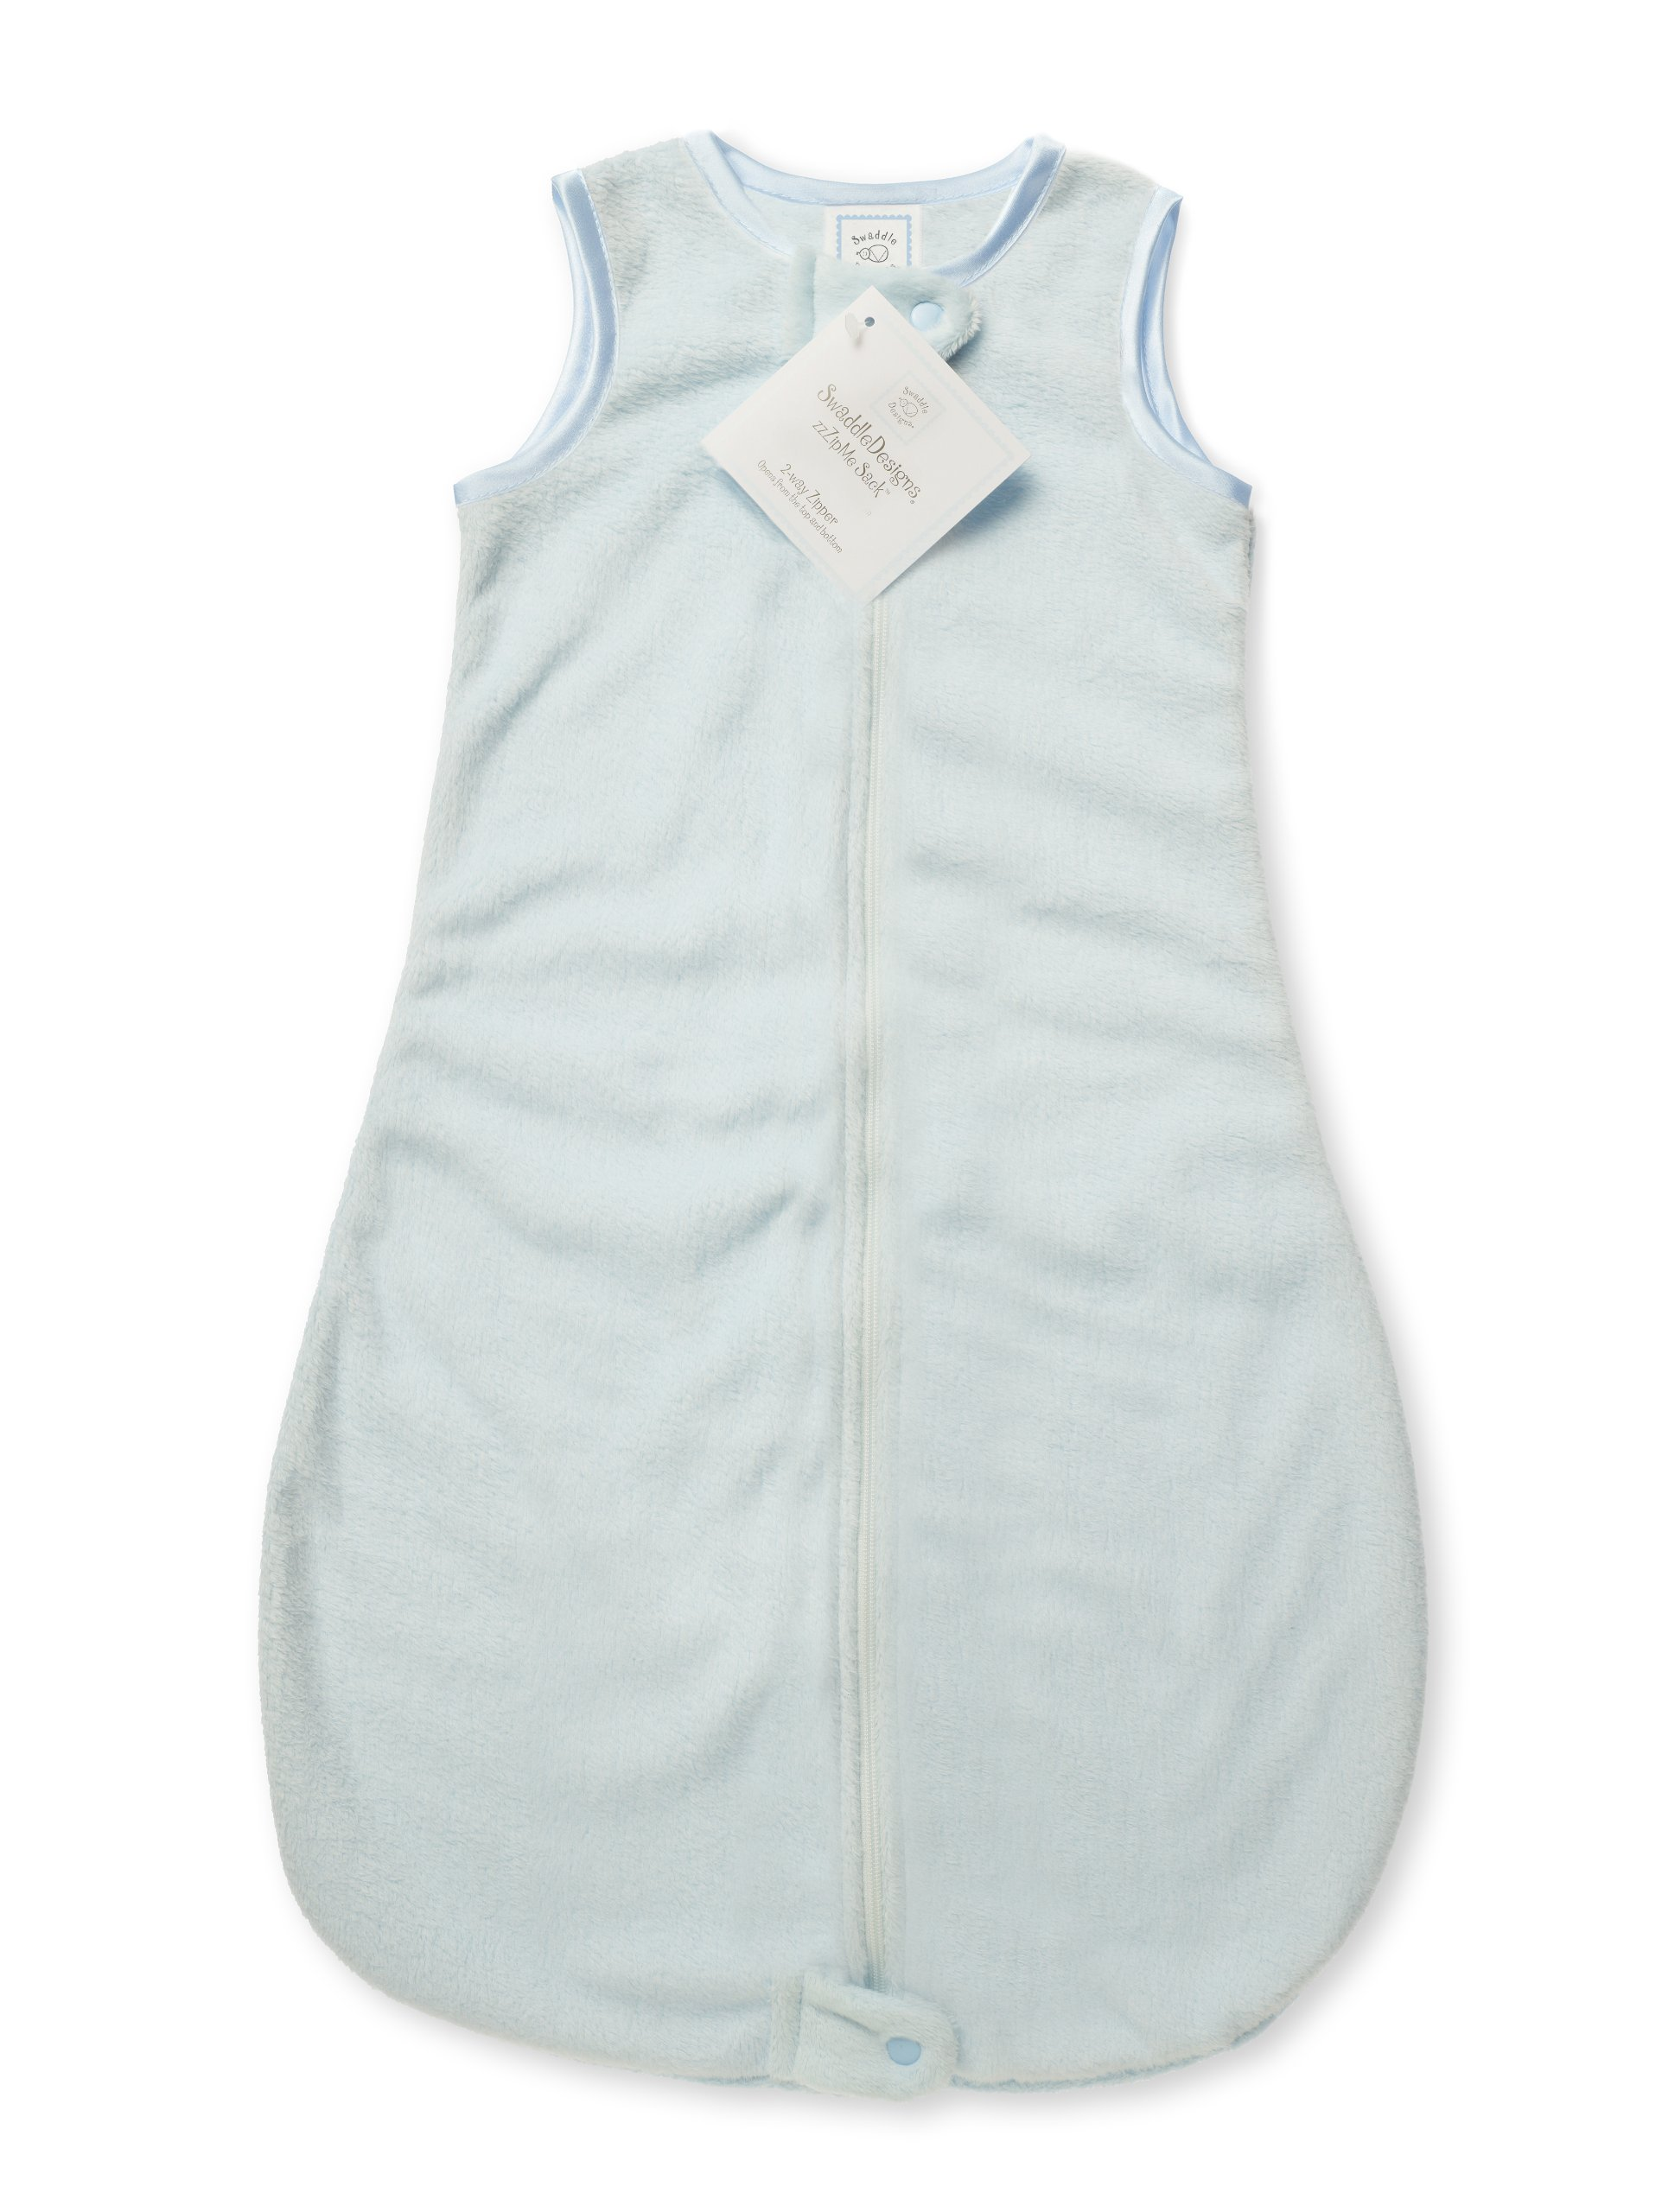 SwaddleDesigns Baby Velvet Sleeping Sack with 2-Way Zipper, Pastel Blue with Blue Trim, 12-18MO